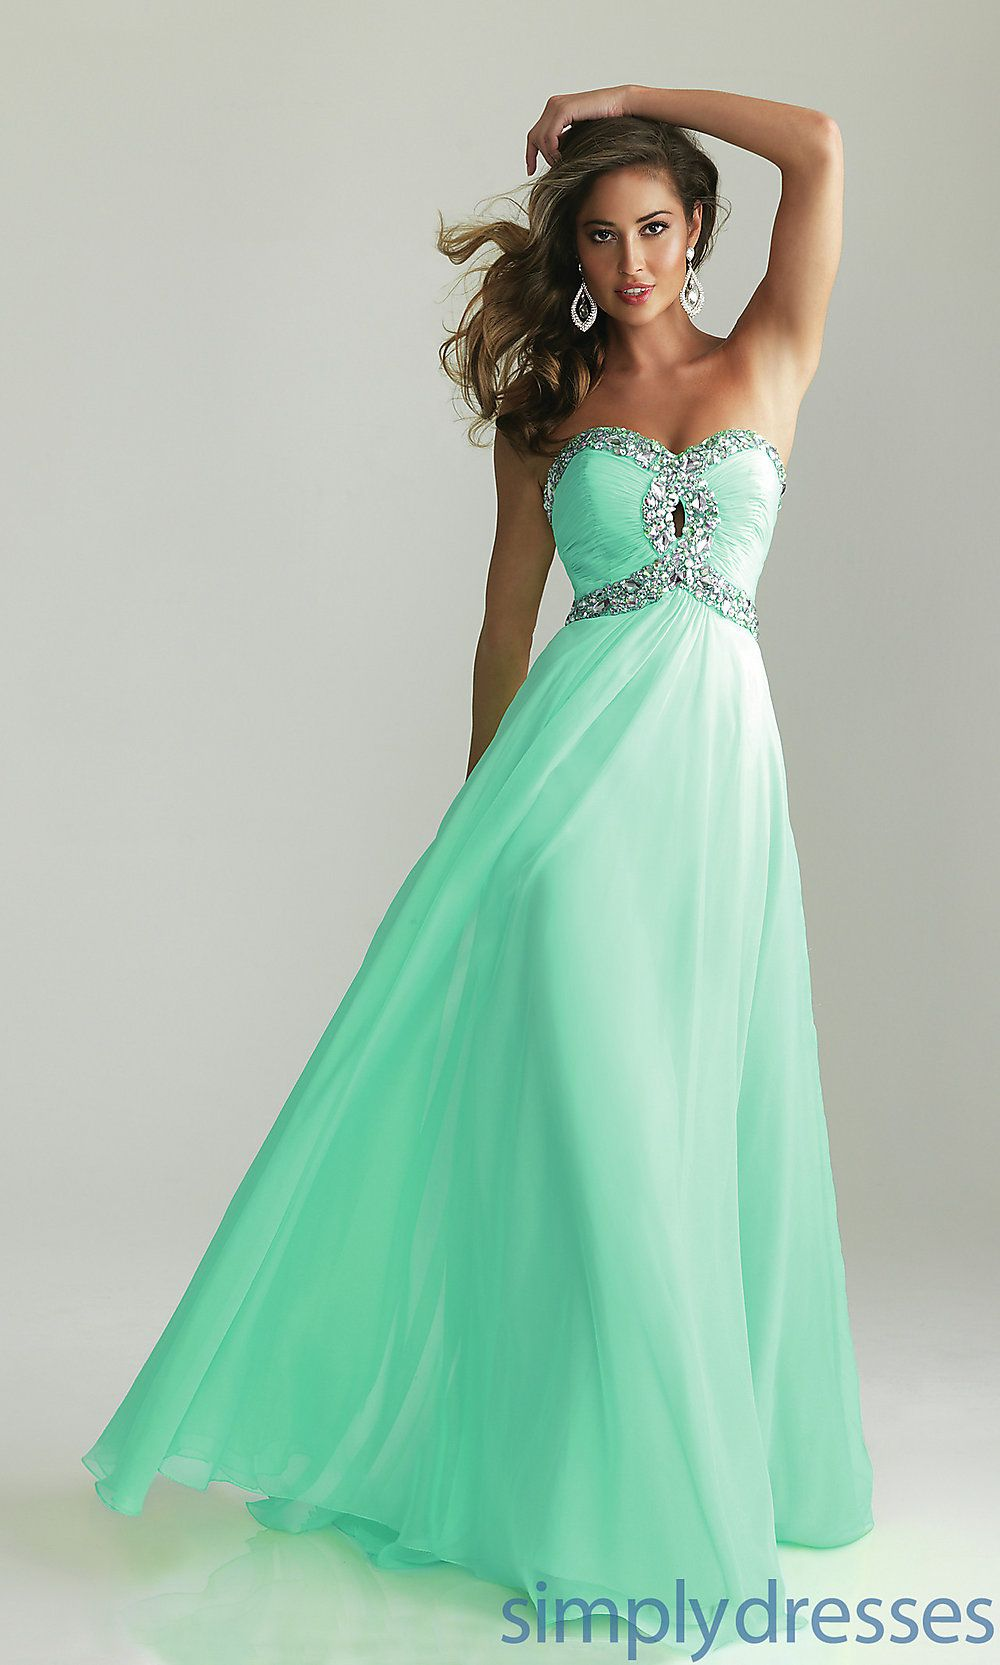 Beaded Strapless Sweetheart Night Moves Prom Gown | Prom, Puffy ...